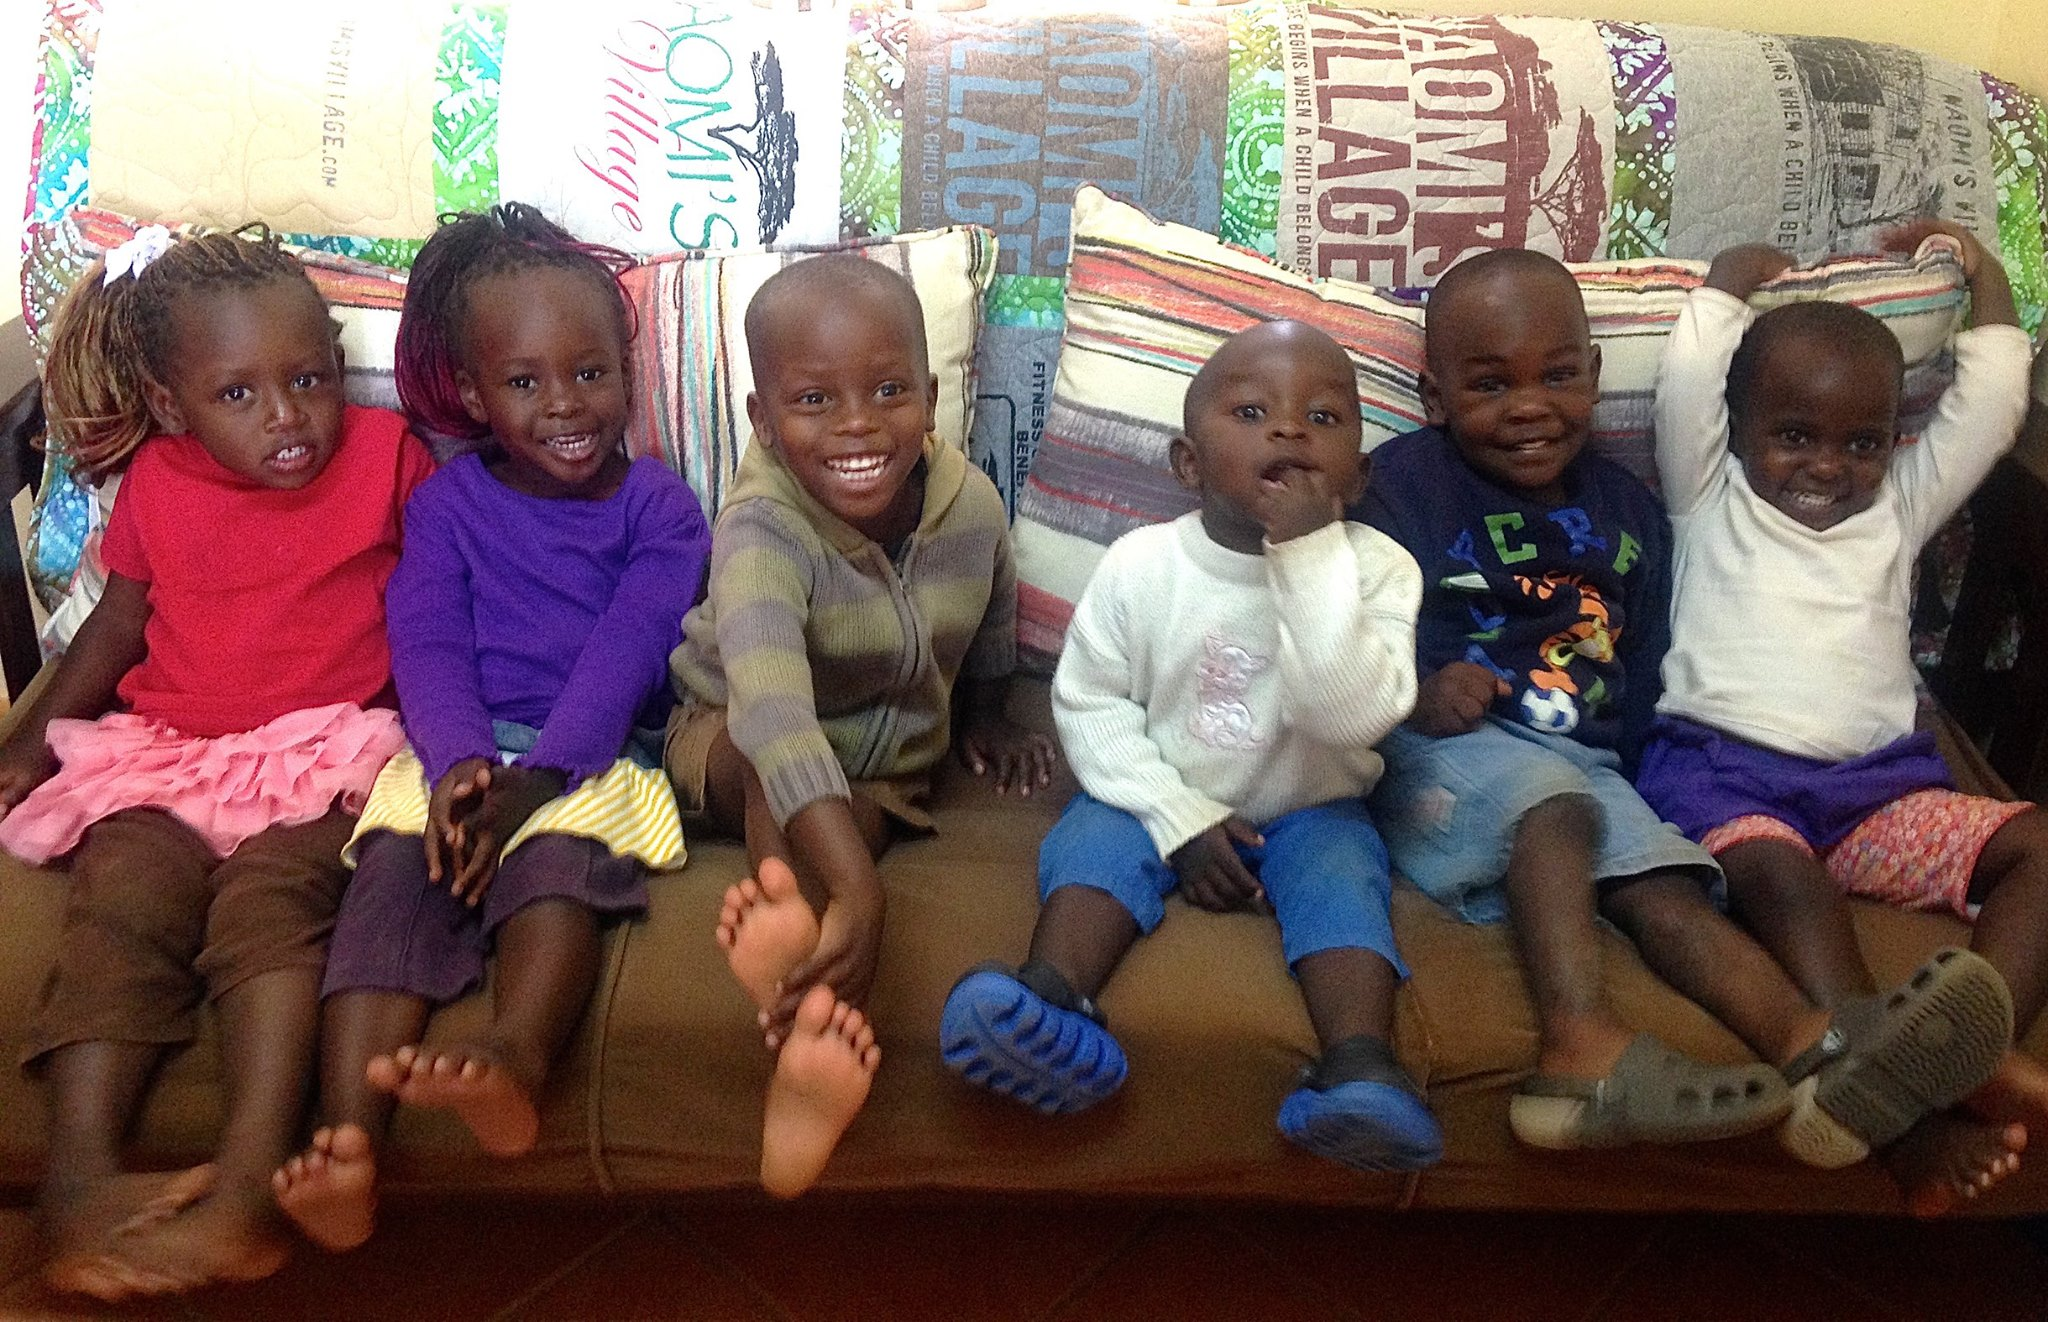 A place in Kenya to encounter hope and healing